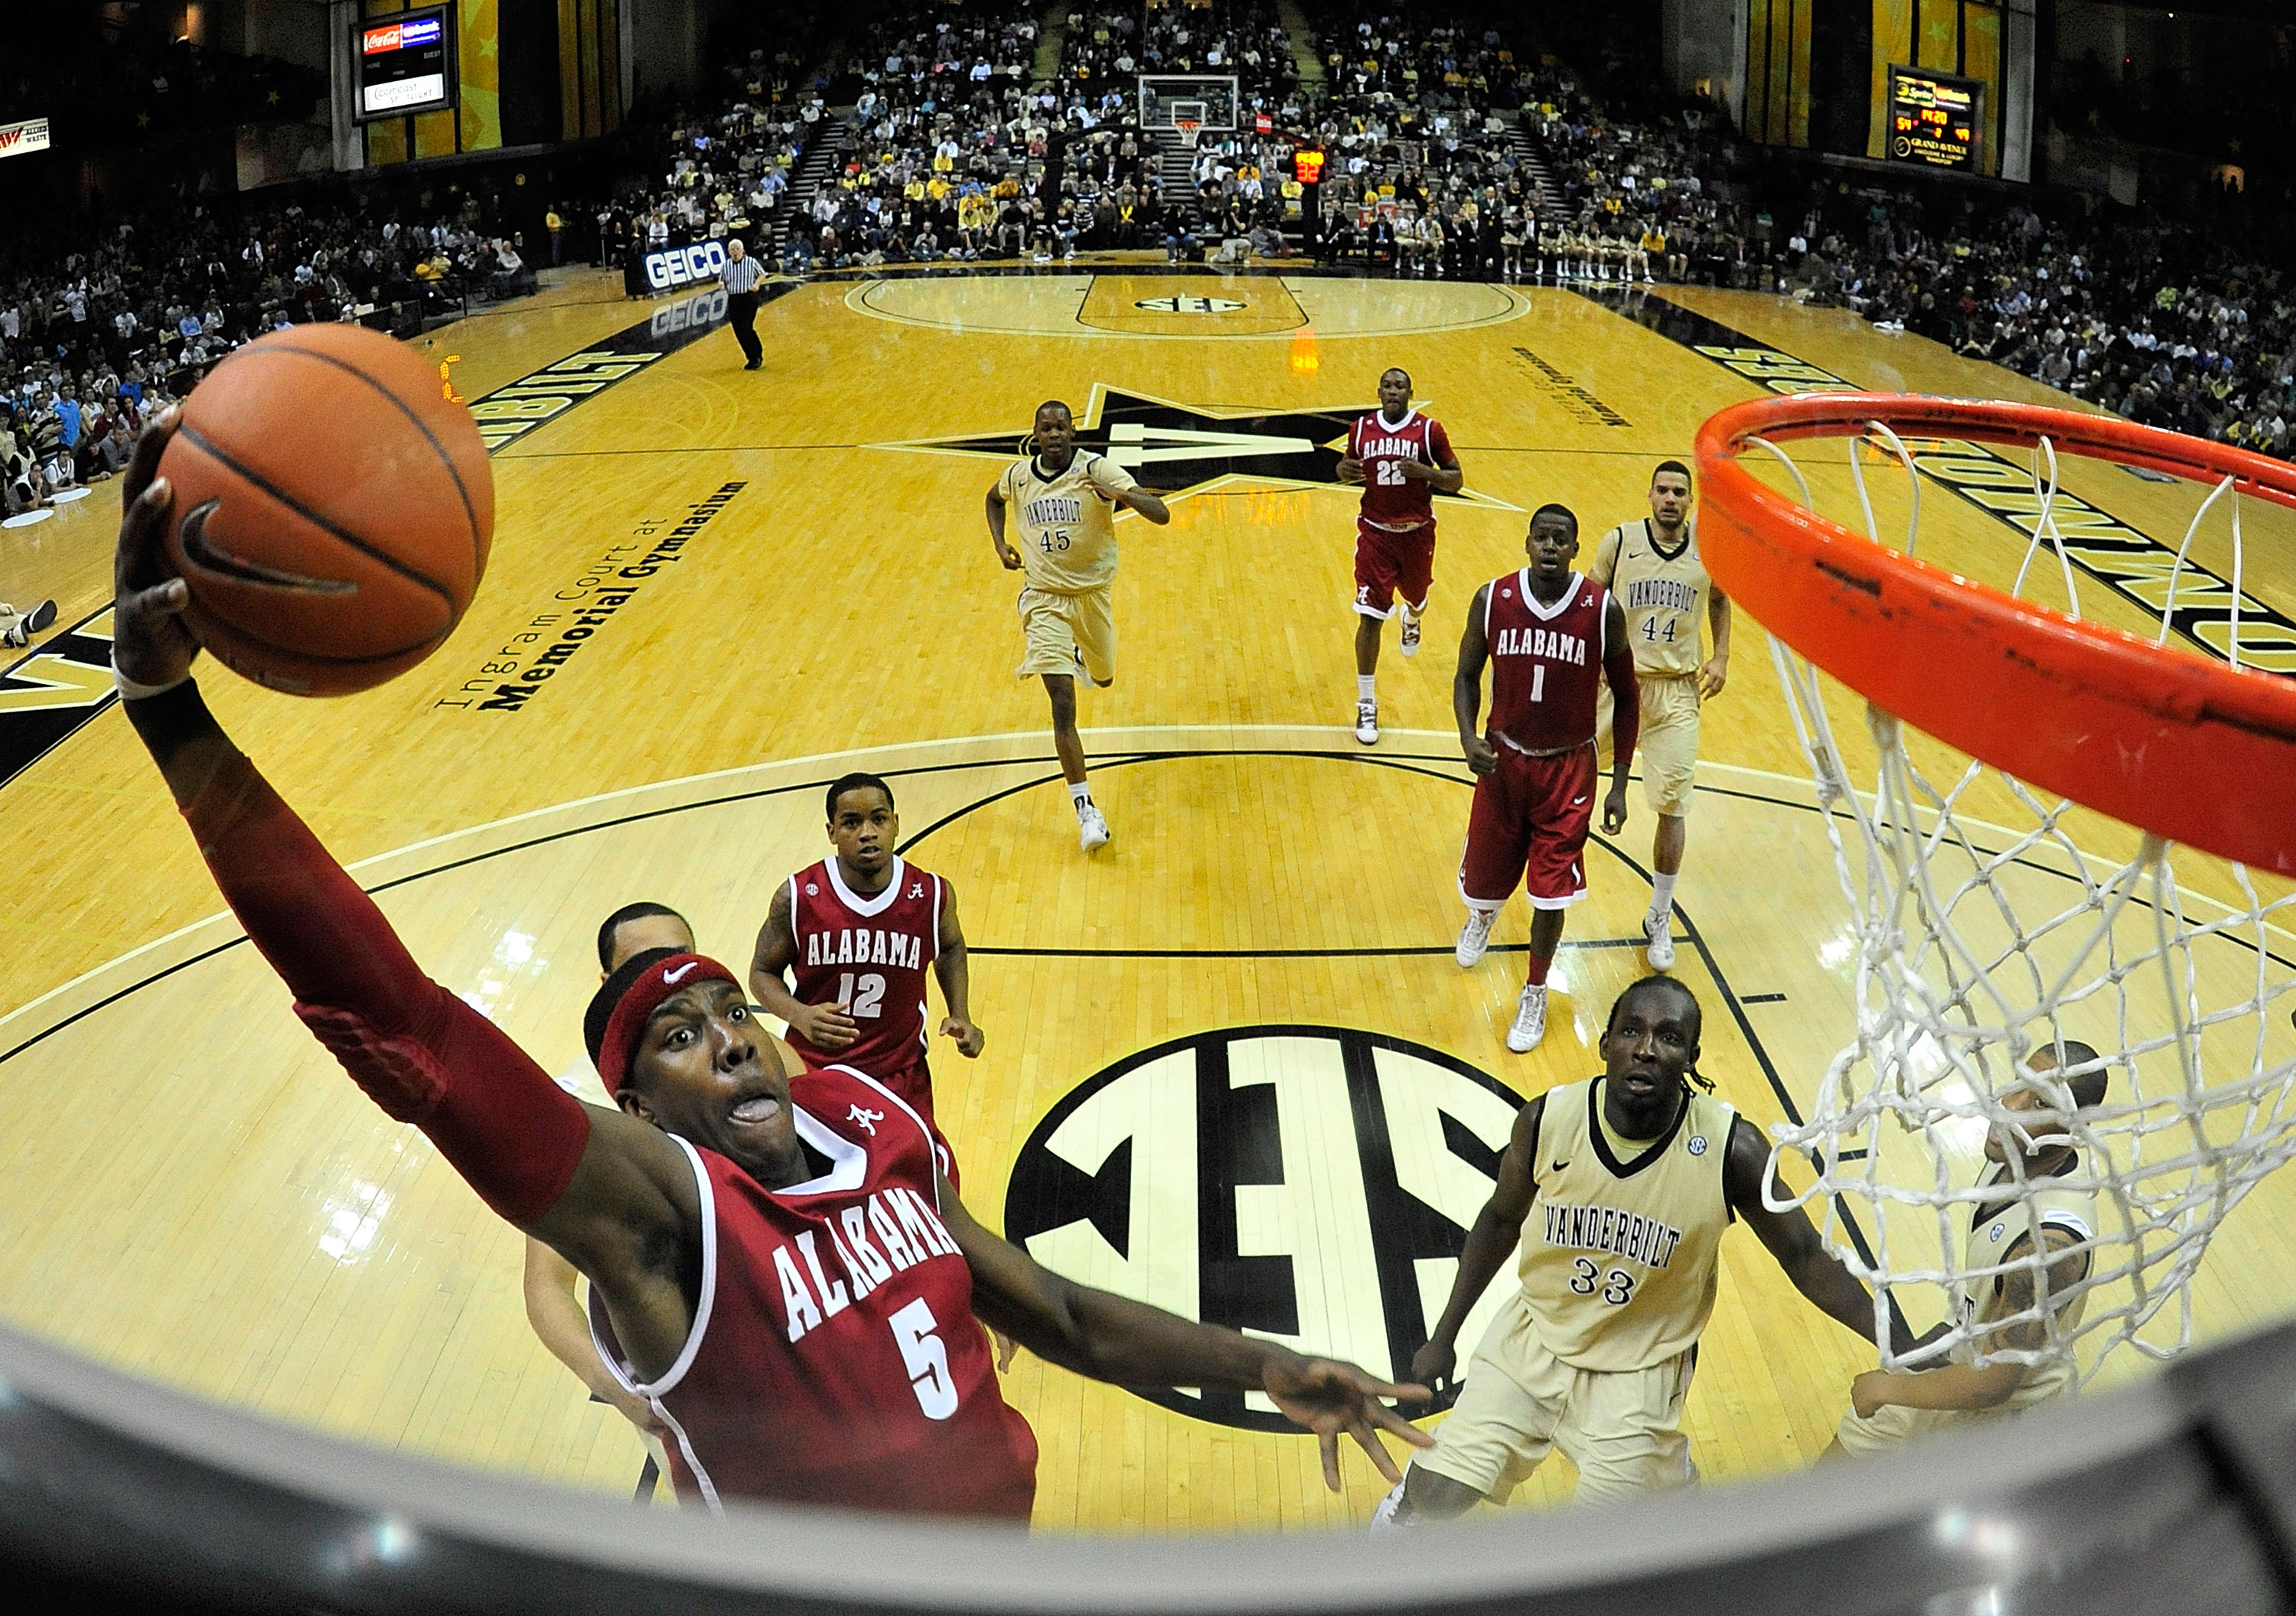 NASHVILLE, TN - FEBRUARY 10:  Tony Mitchell #5 of the Alabama Crimson Tide drives in for a dunk against the Vanderbilt Commodores at Memorial Gym on February 10, 2011 in Nashville, Tennessee. Vanderbilt won 81-77. (Photo by Grant Halverson/Getty Images)